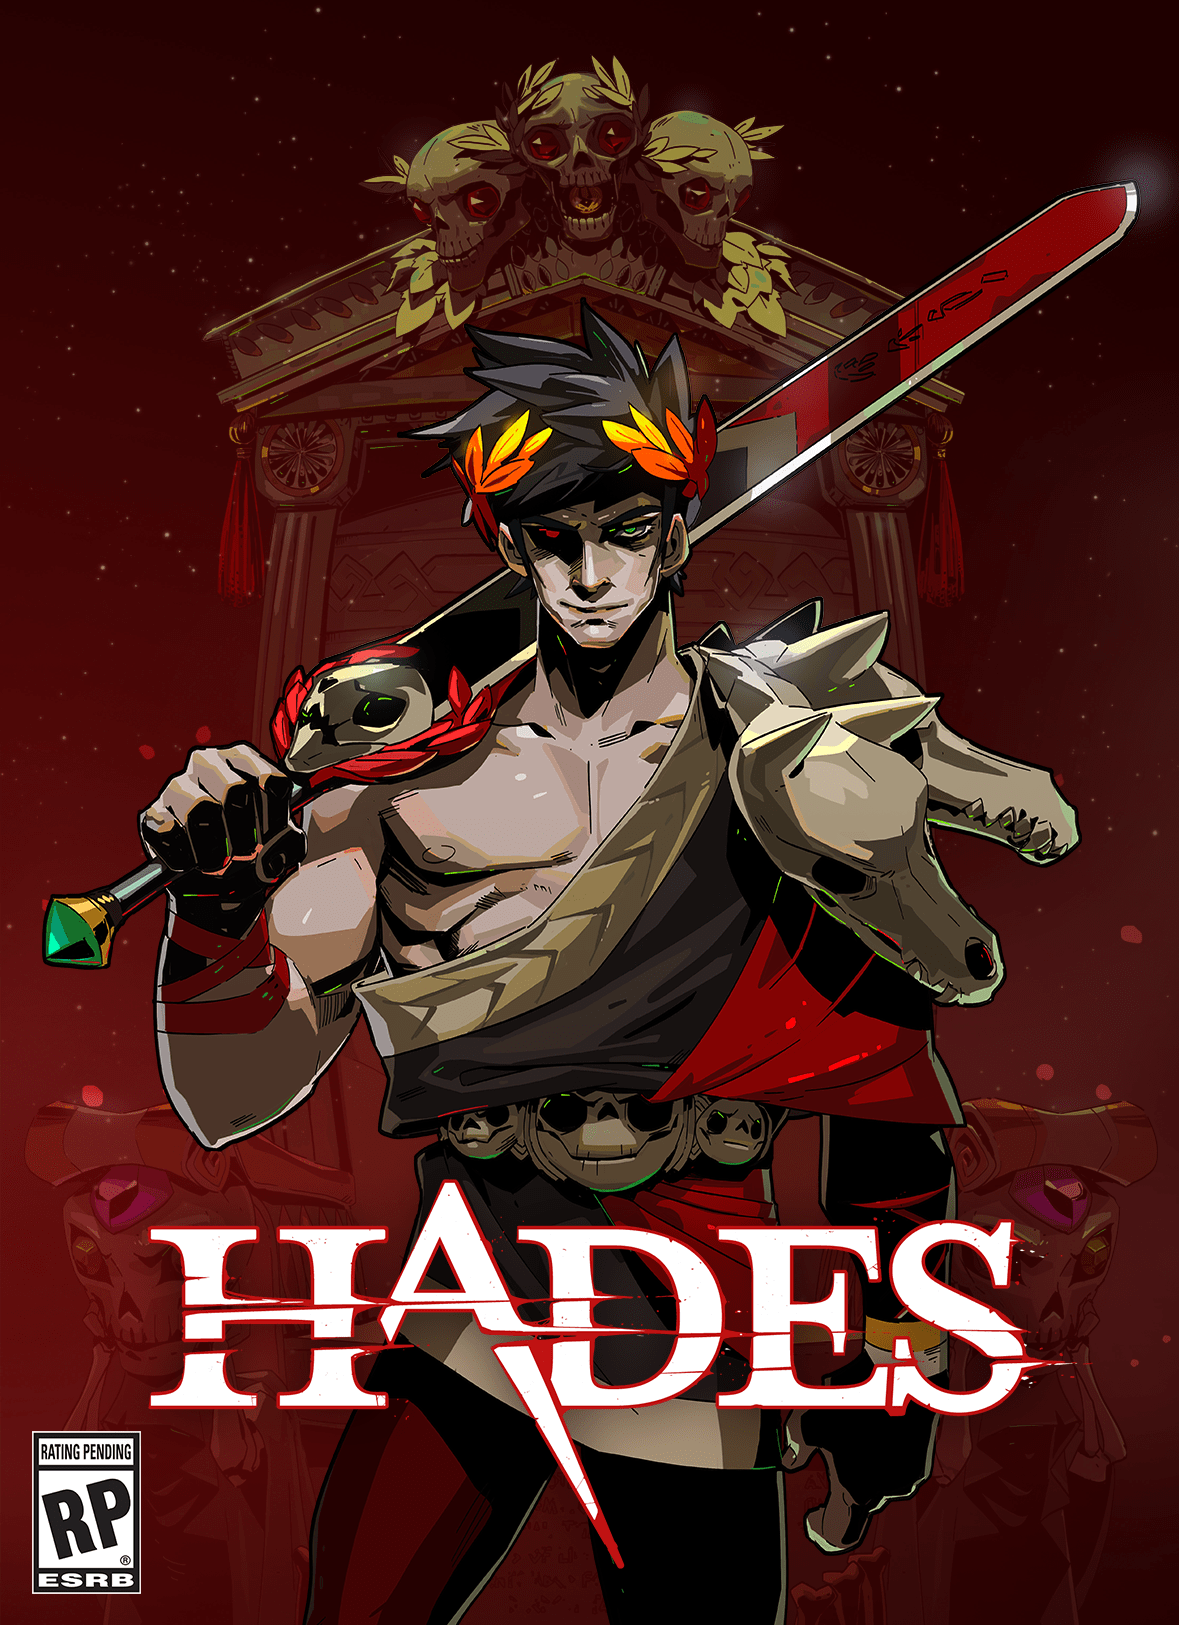 Download Hades v1.37836-P2P in PC [ Torrent ]